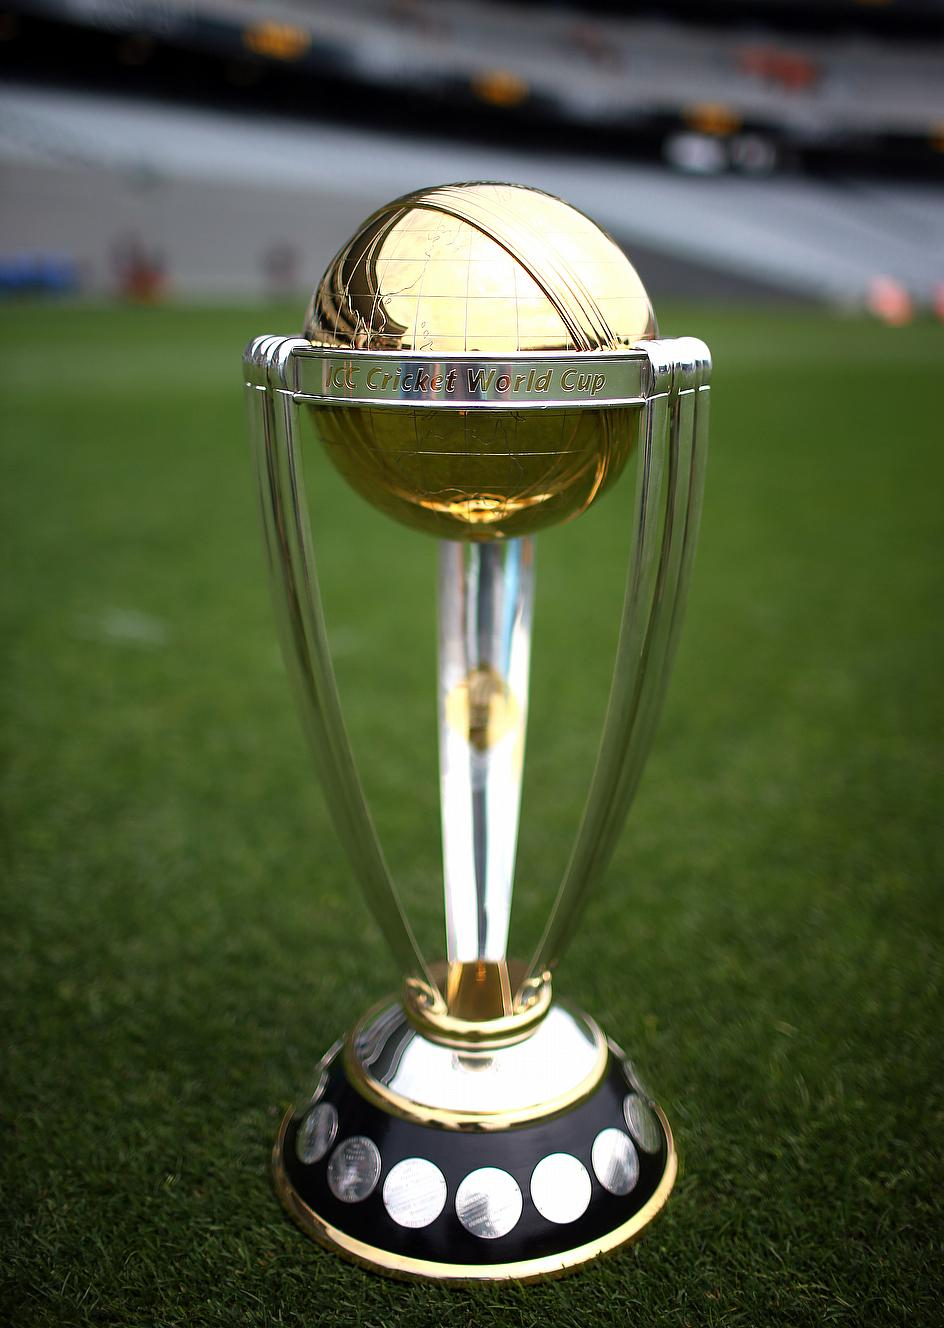 essay of icc world cup Read this essay on world cup 2011 come browse our large digital warehouse of free sample essays get the knowledge you need in order to pass your classes and more.